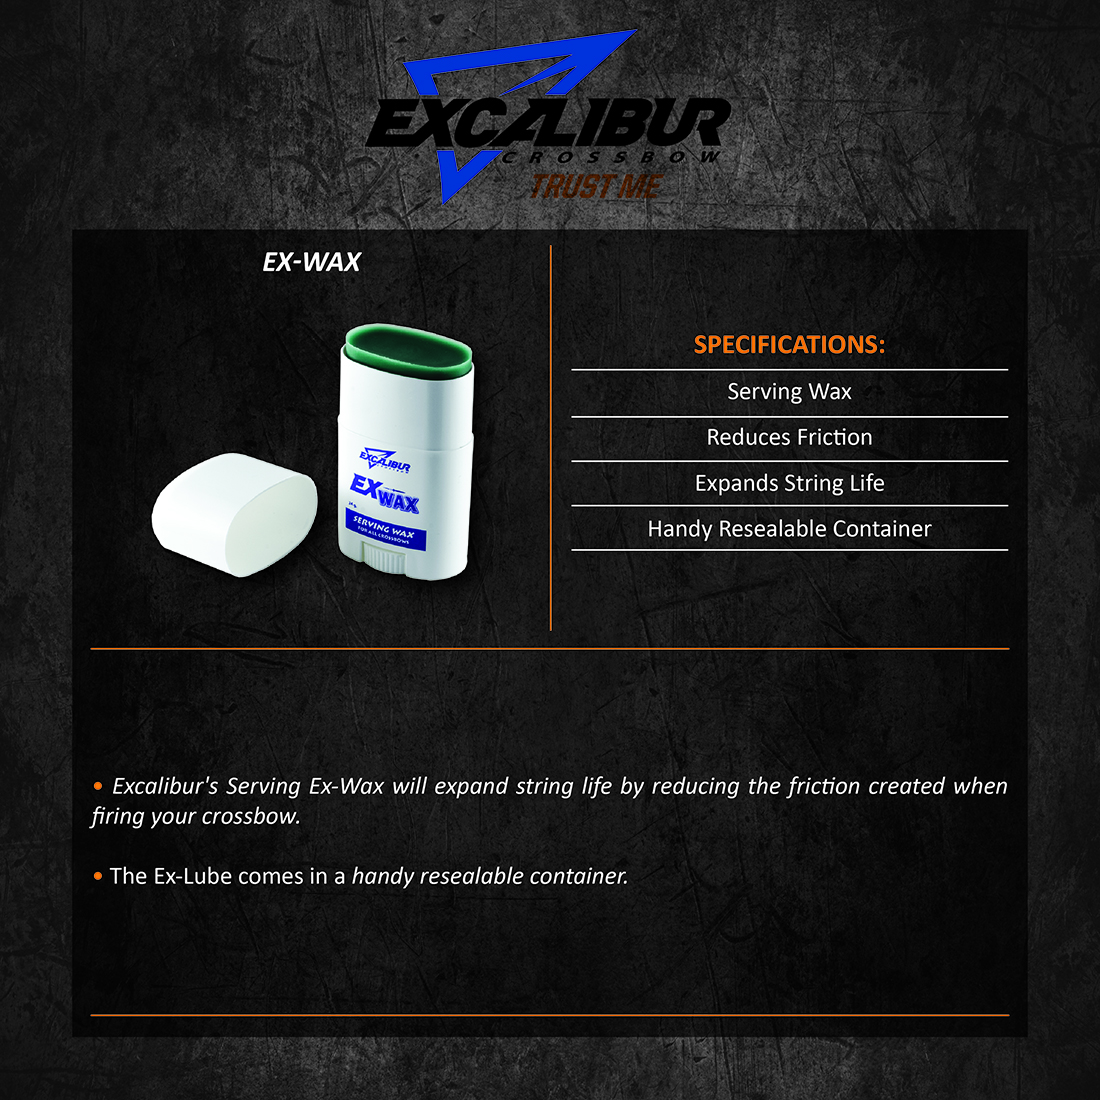 Excalibur_Ex_Wax_Product_Description